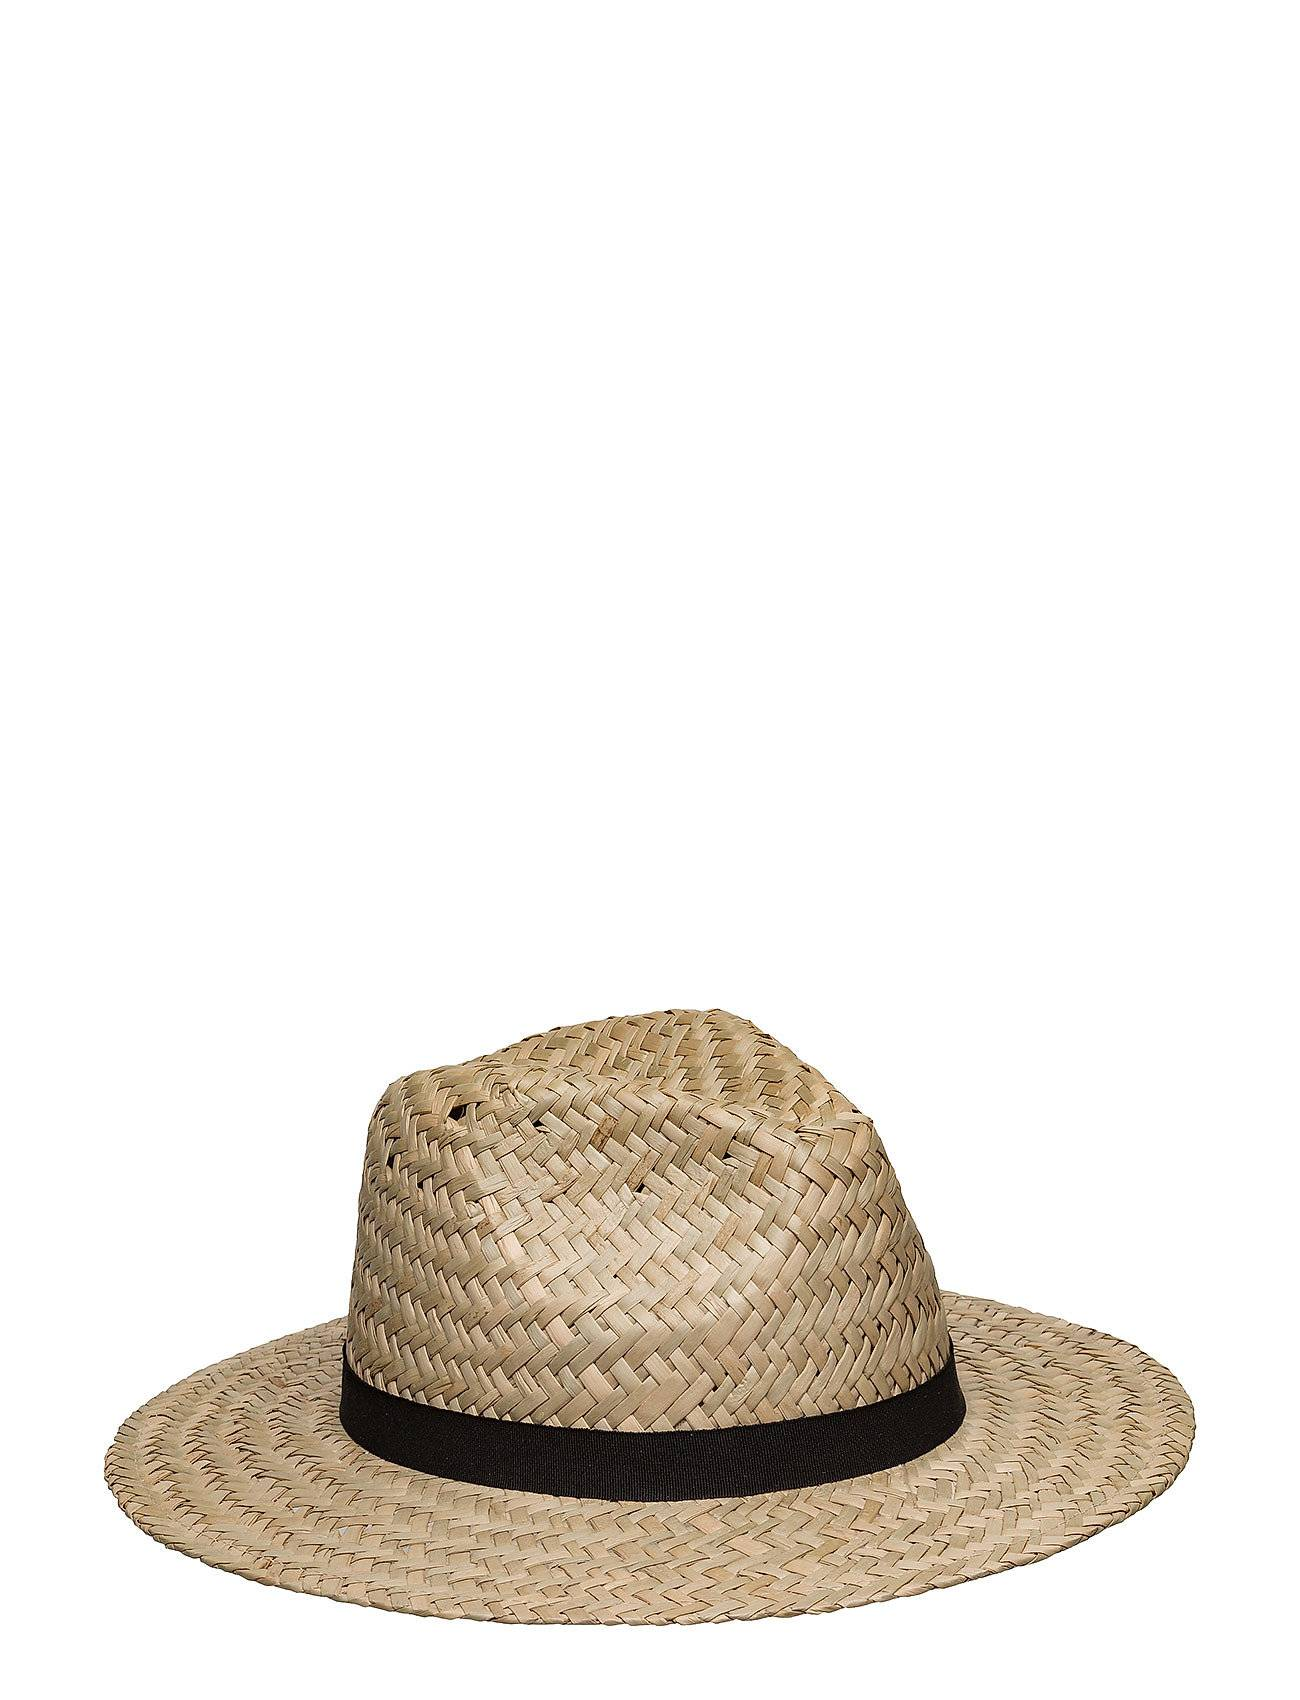 Lexington Clothing Panama Hat